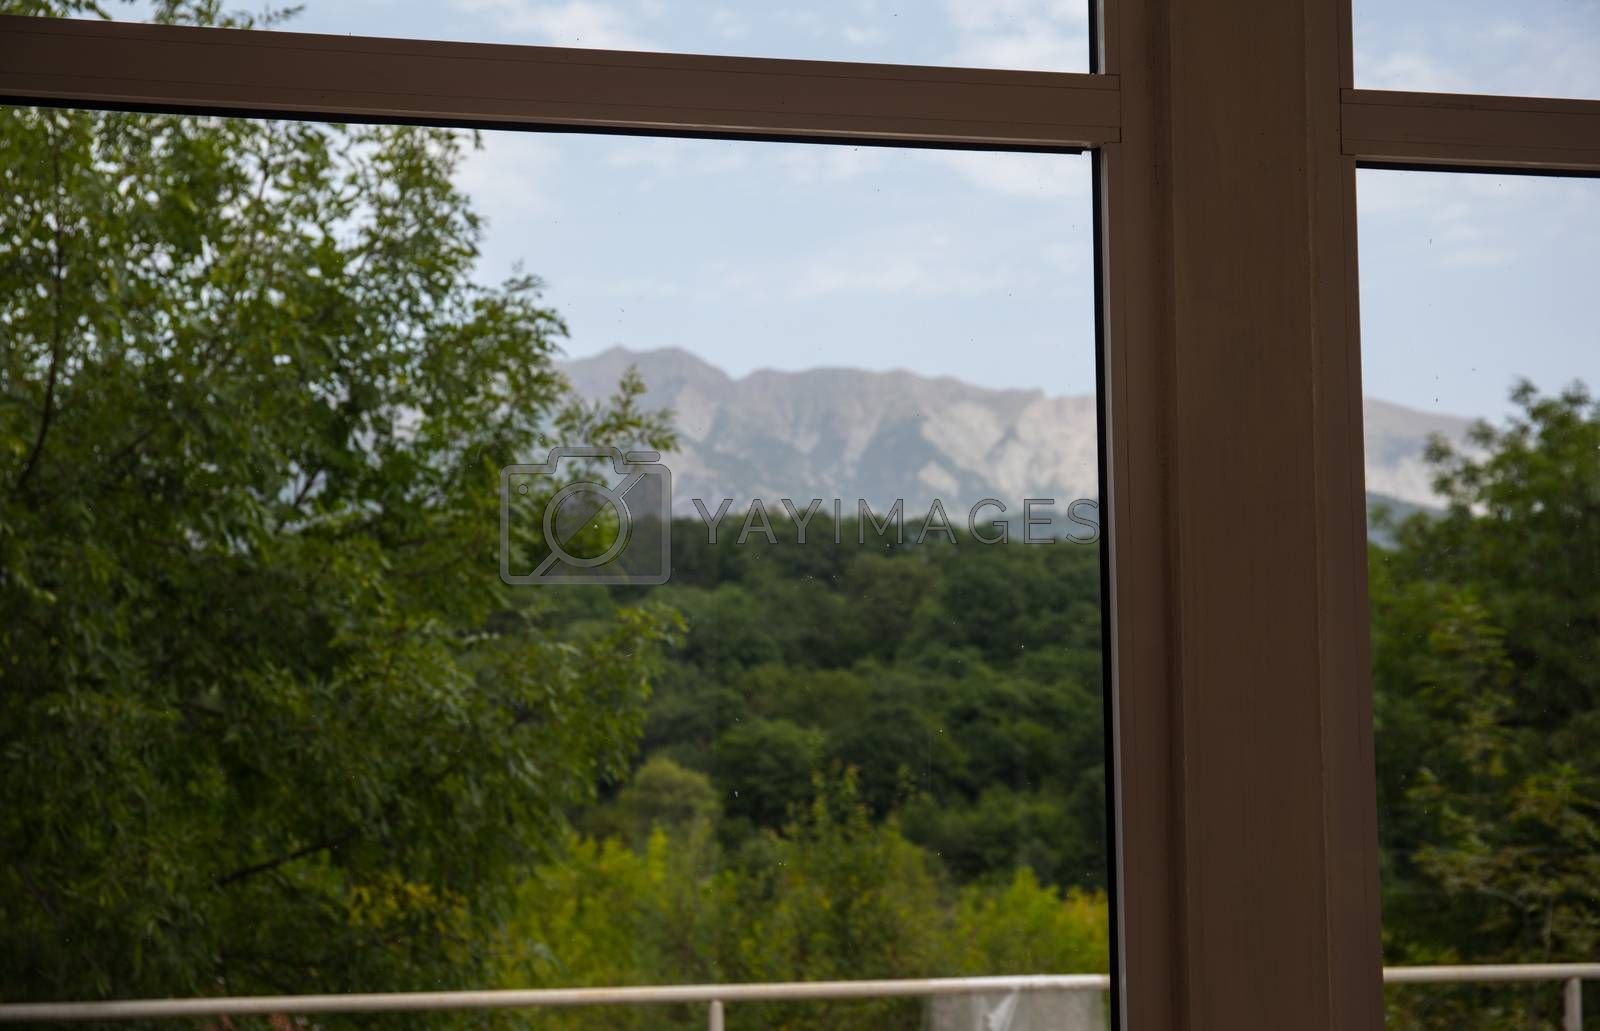 landscape nature view background. Mountains and forest view from window.